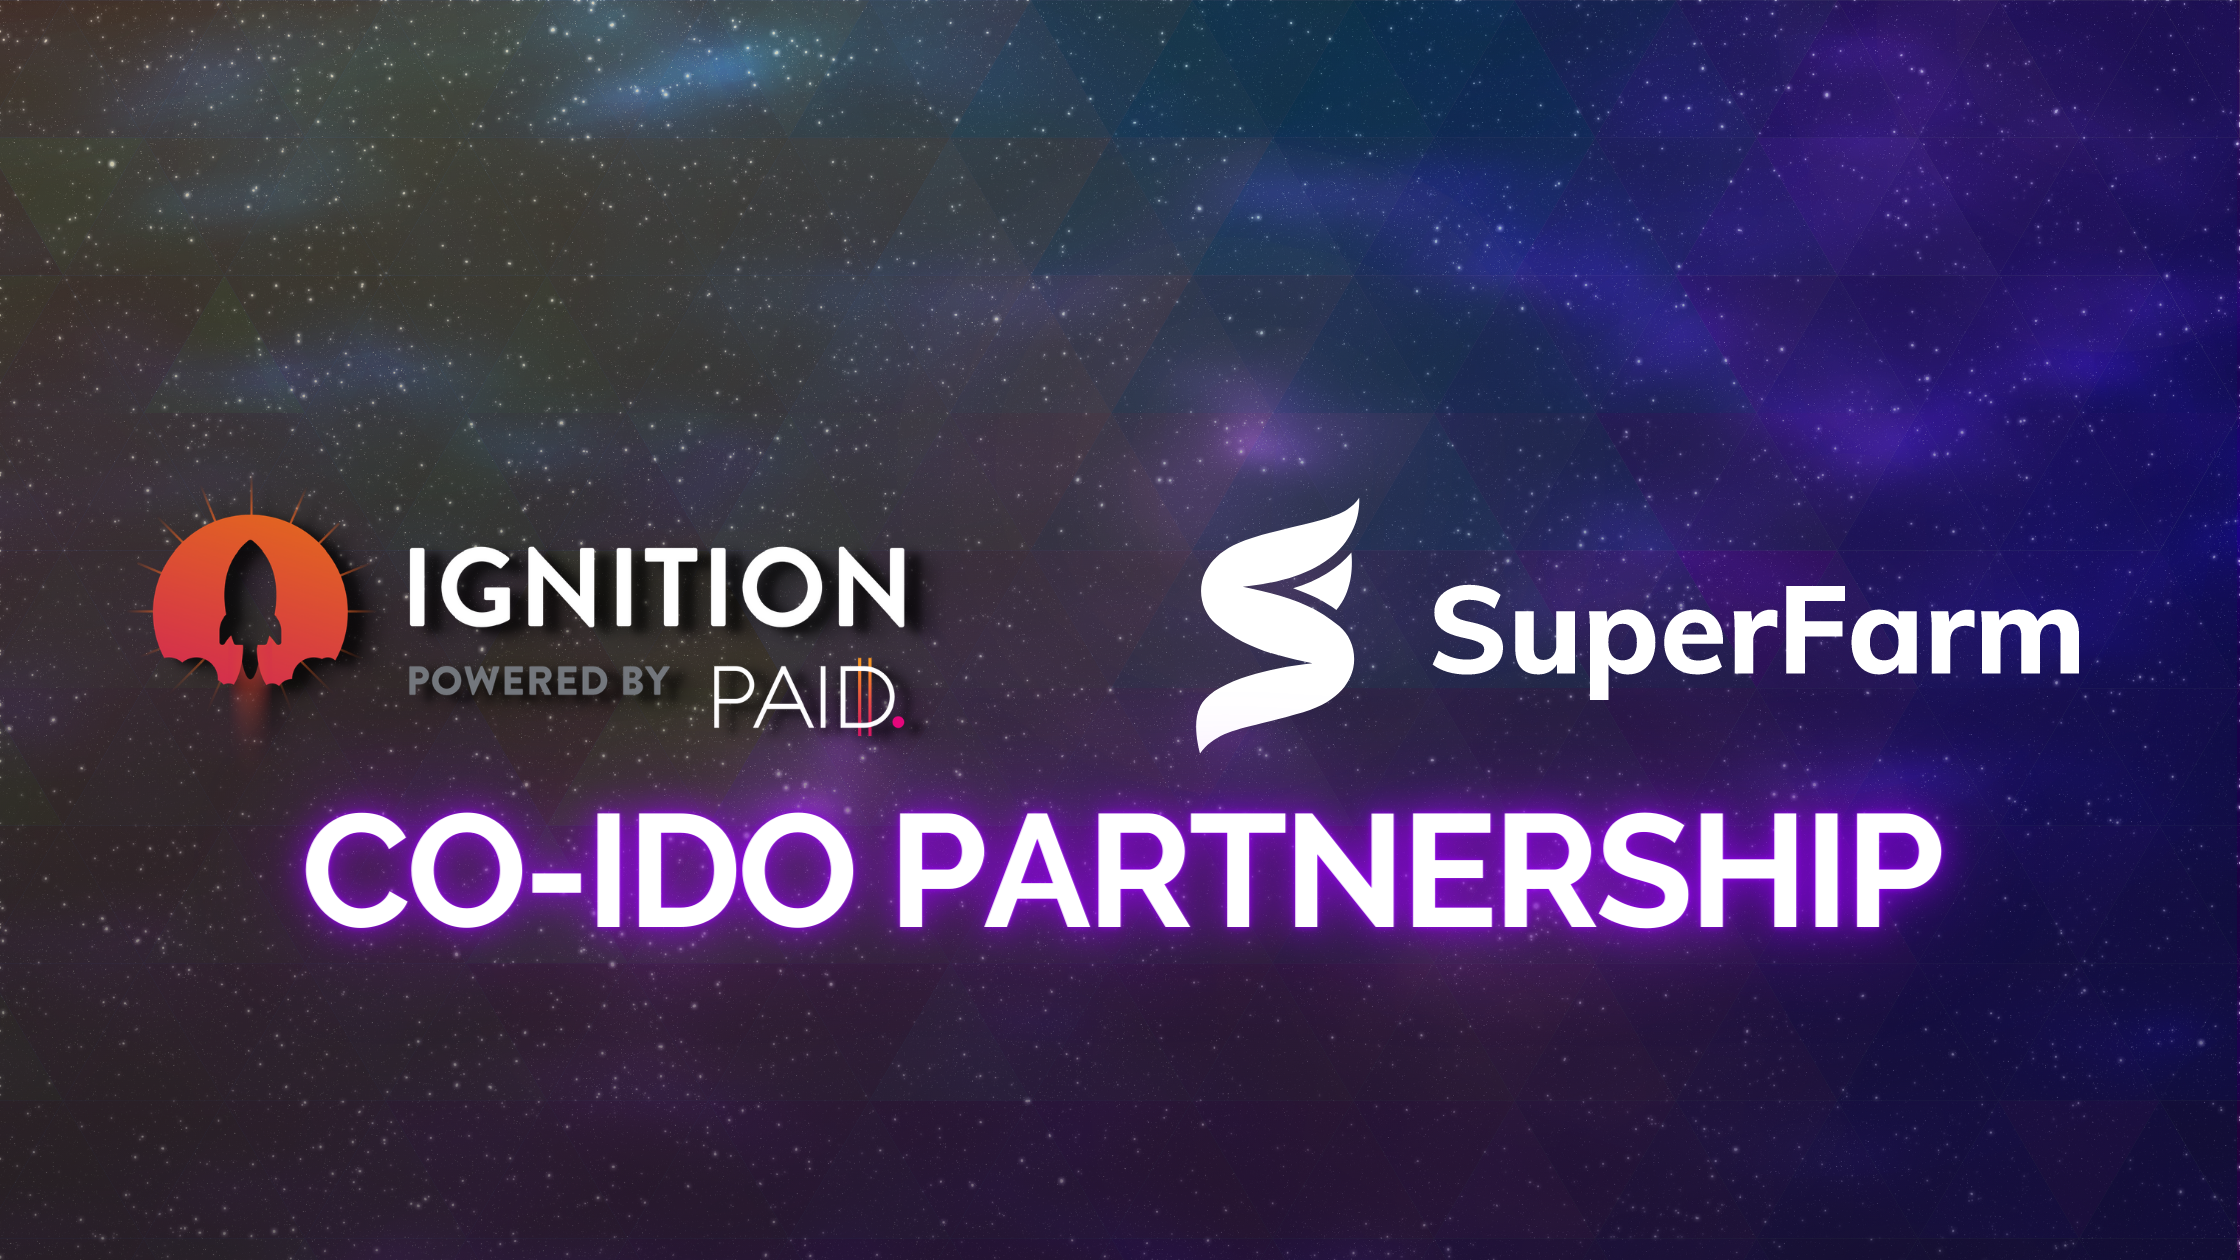 Co-ido partnership between PAID Ignition & SuperFarm